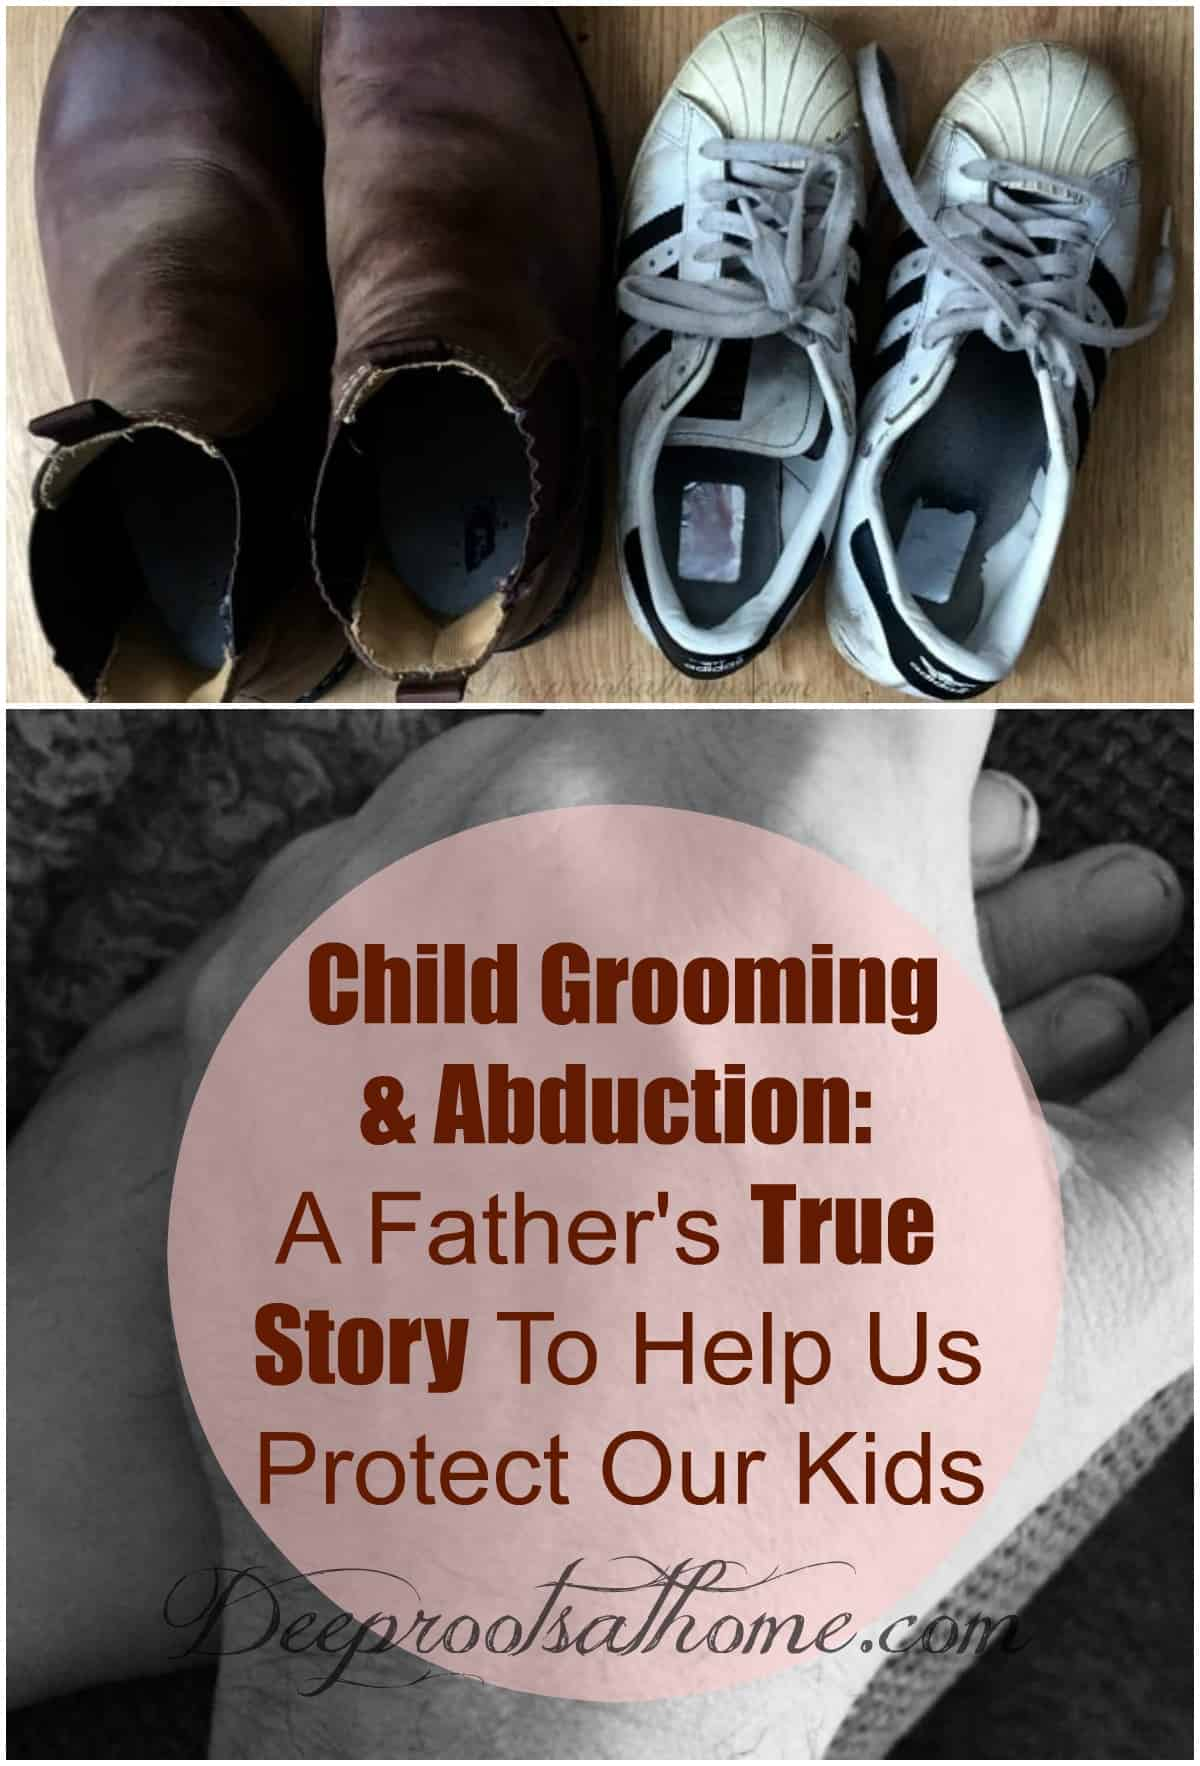 Child Grooming & Abduction: A True Story Shared To Help Us Protect Our Children, story of a father protecting his child from pedophile grooming